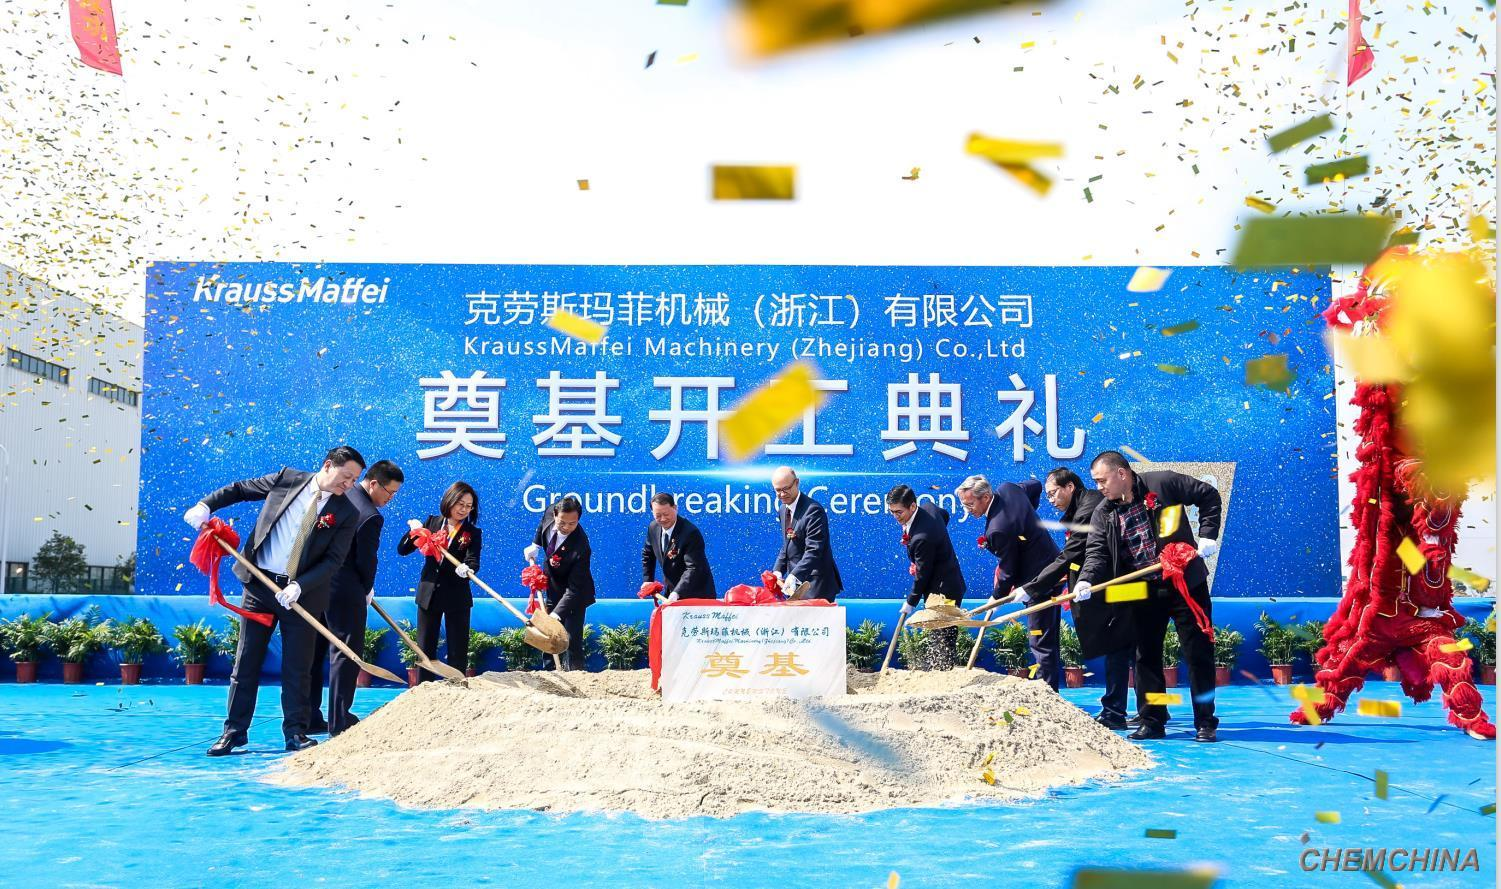 Present at the groundbreaking ceremony were leaders of the development zone, high-level executives of KraussMaffei and guests (Source: ChemChina)